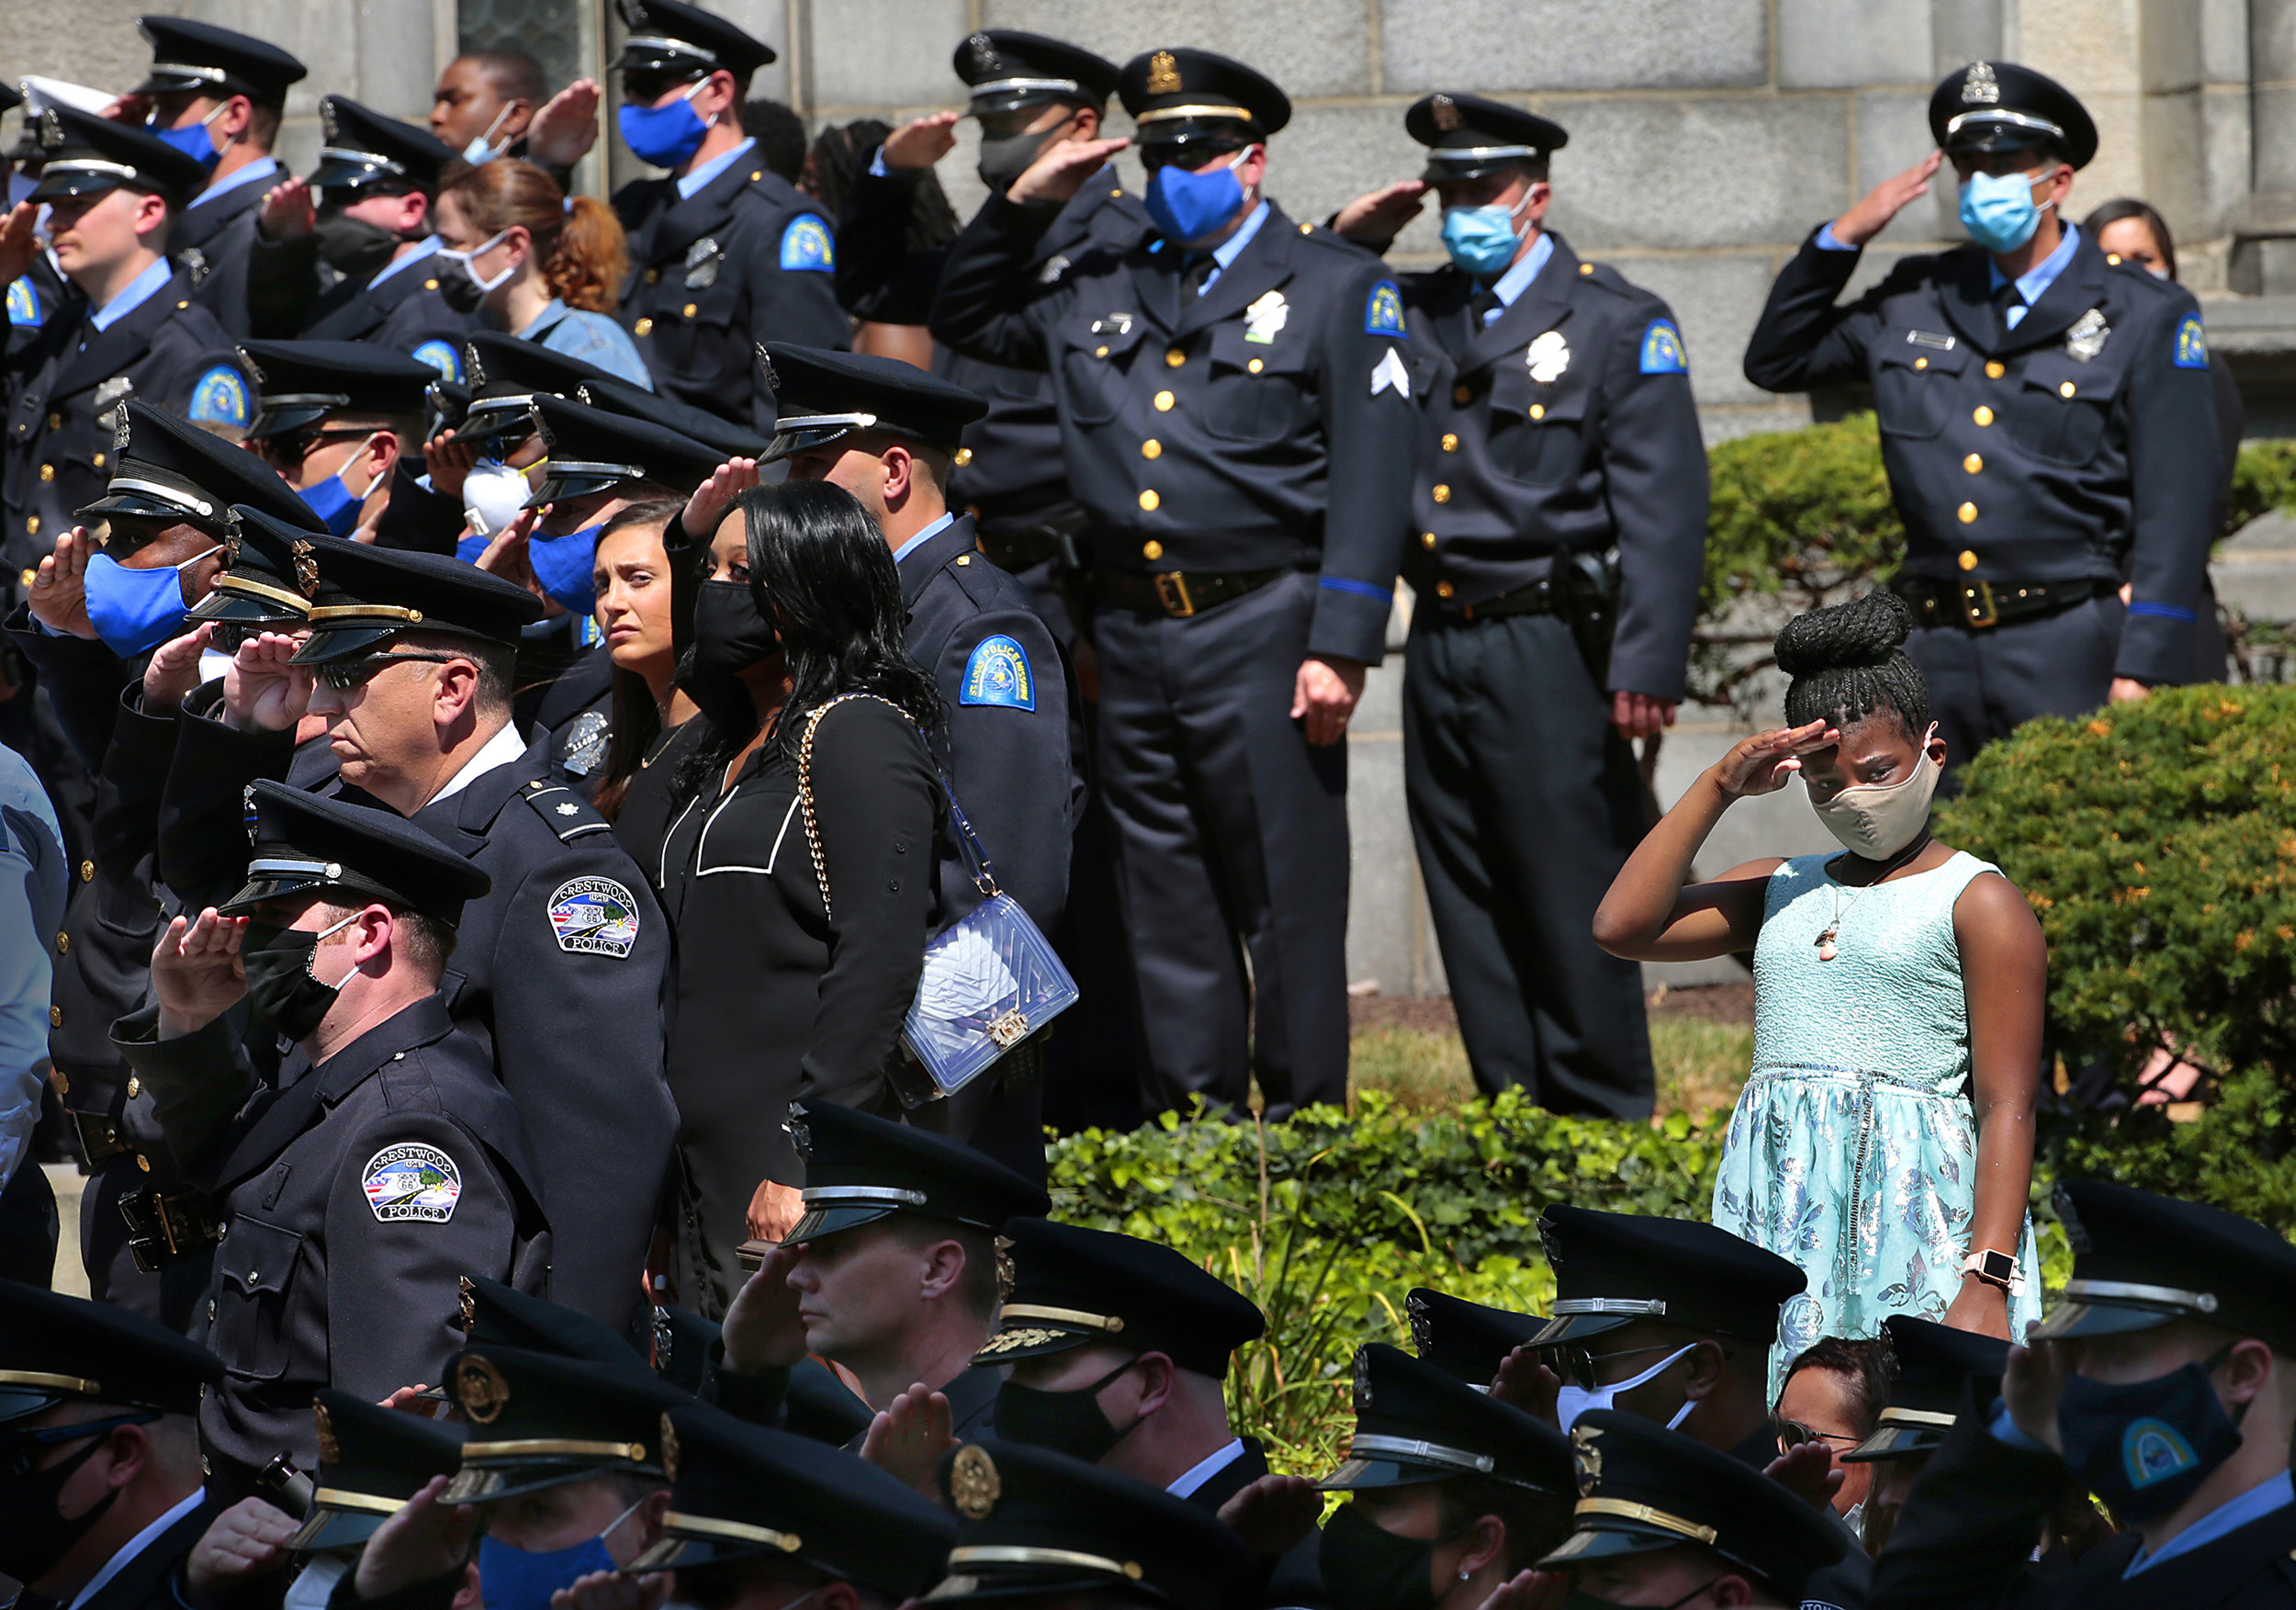 A young girl wearing a face mask and light blue dress salutes with several dozen uniformed police officers around her